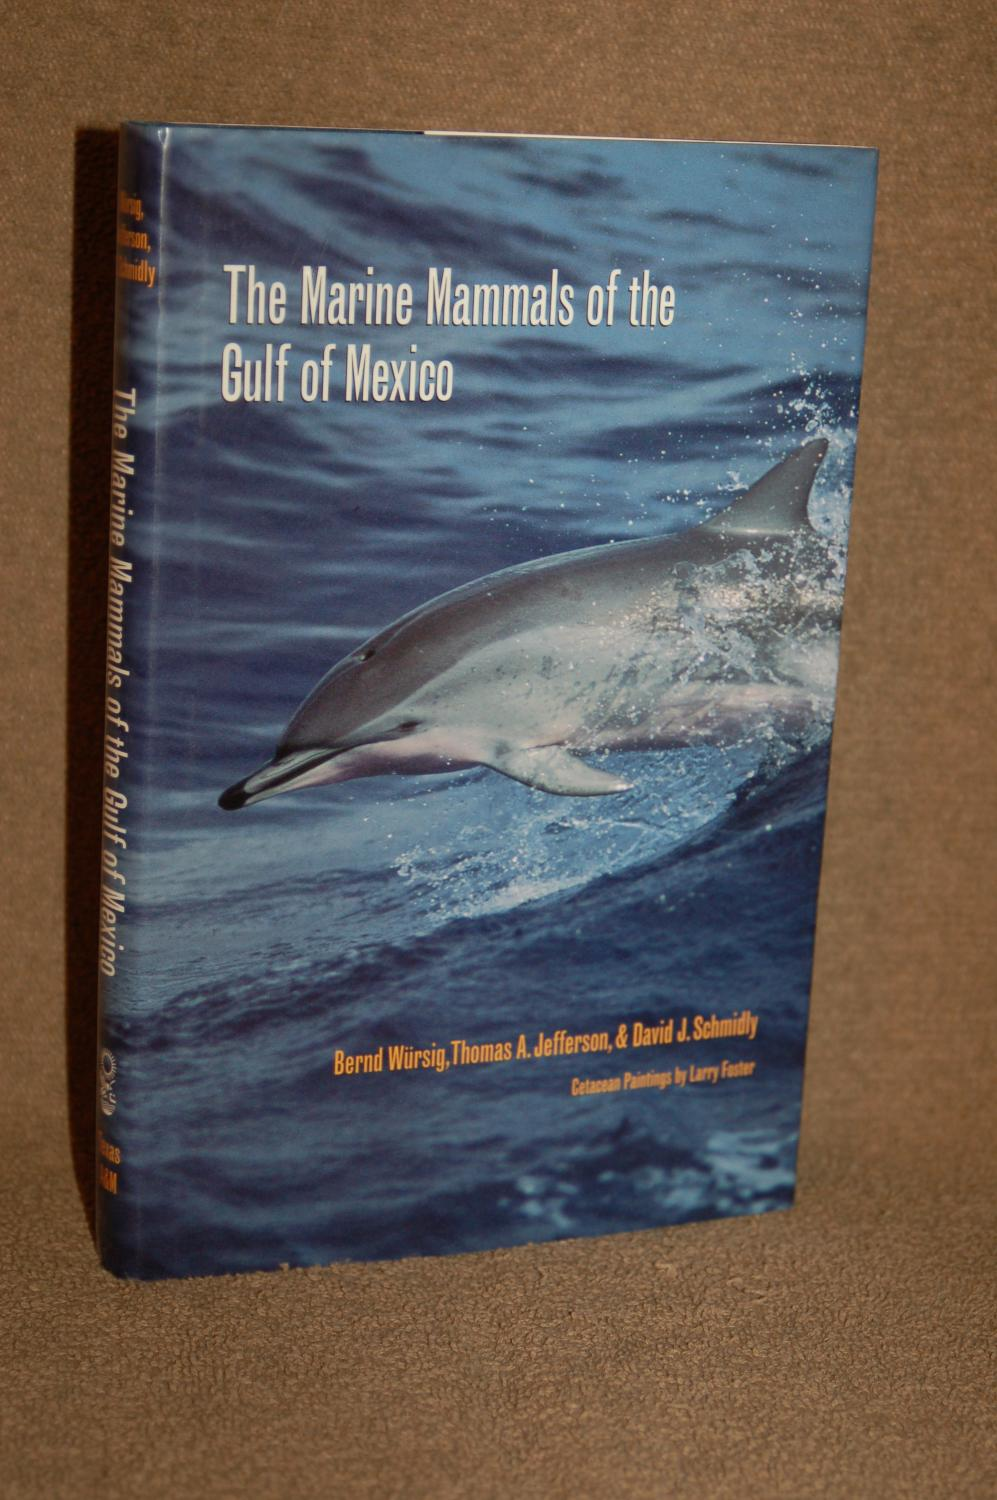 The Marine Mammals of the Gulf of Mexico (W. L. Moody Jr. Natural History Series)